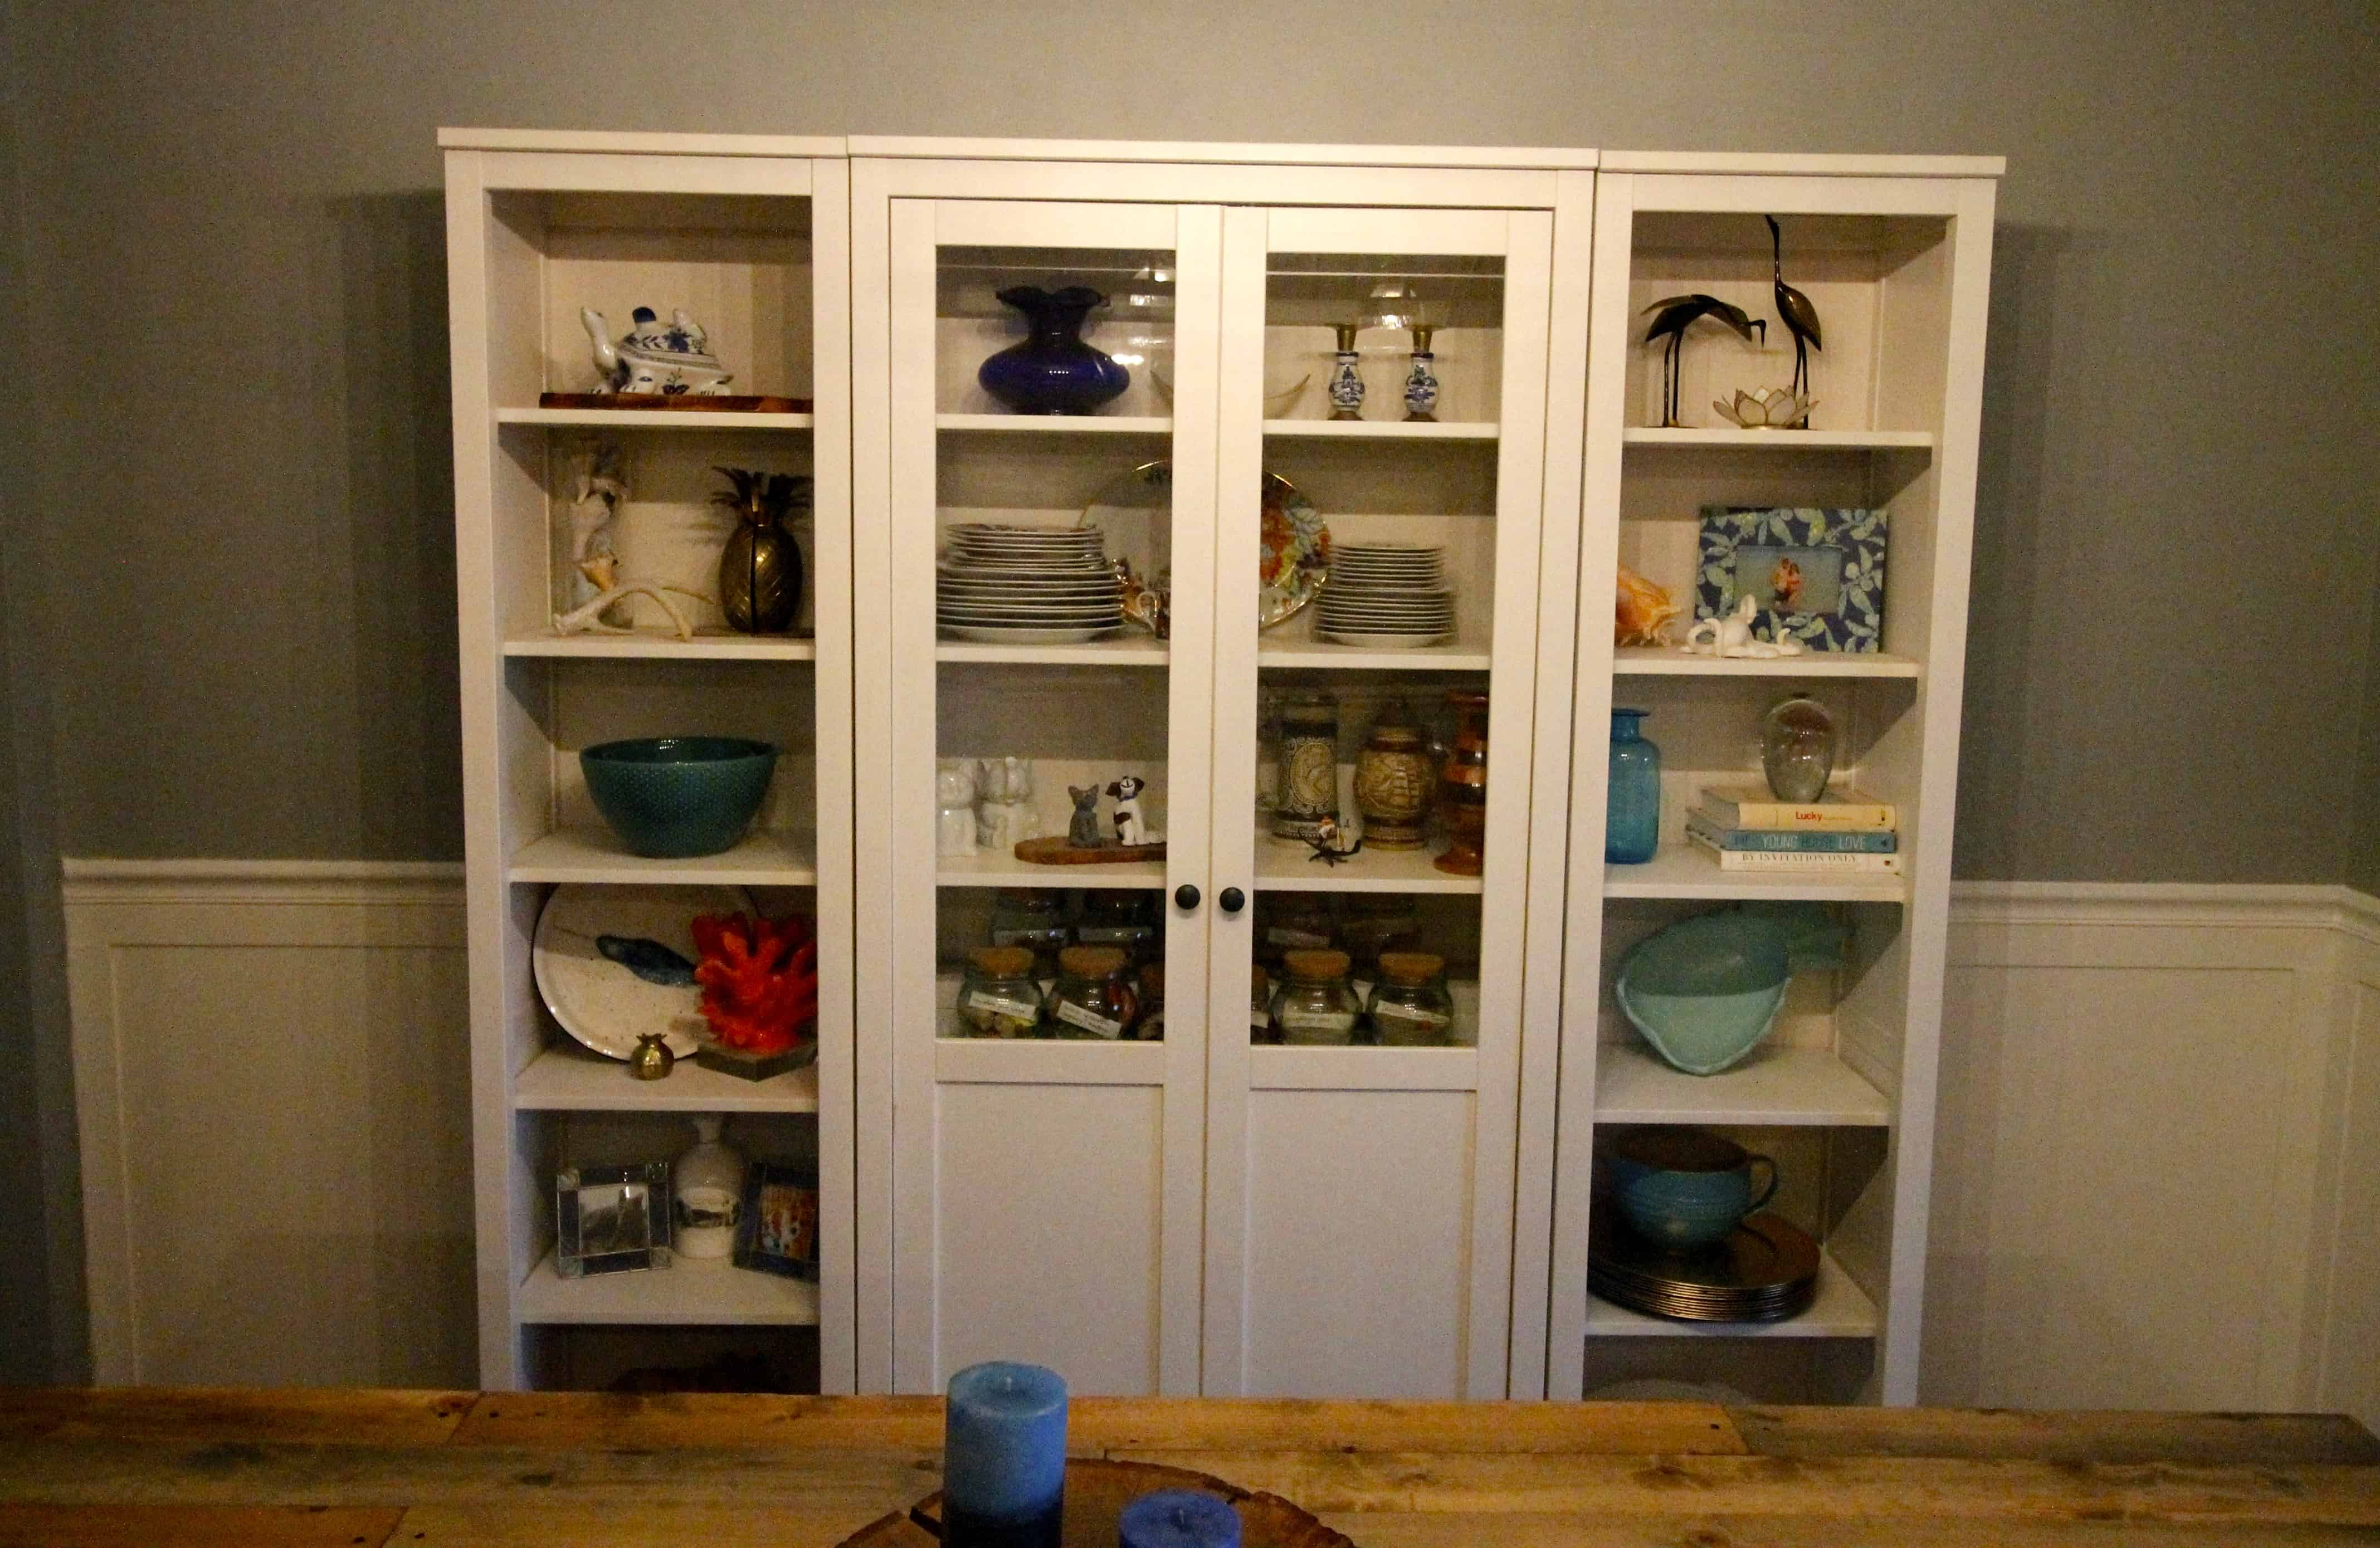 Hemnes Glass Door Cabinet Our New China Cabinet Set Up - Ikea Hemnes Glass Door Cabinet